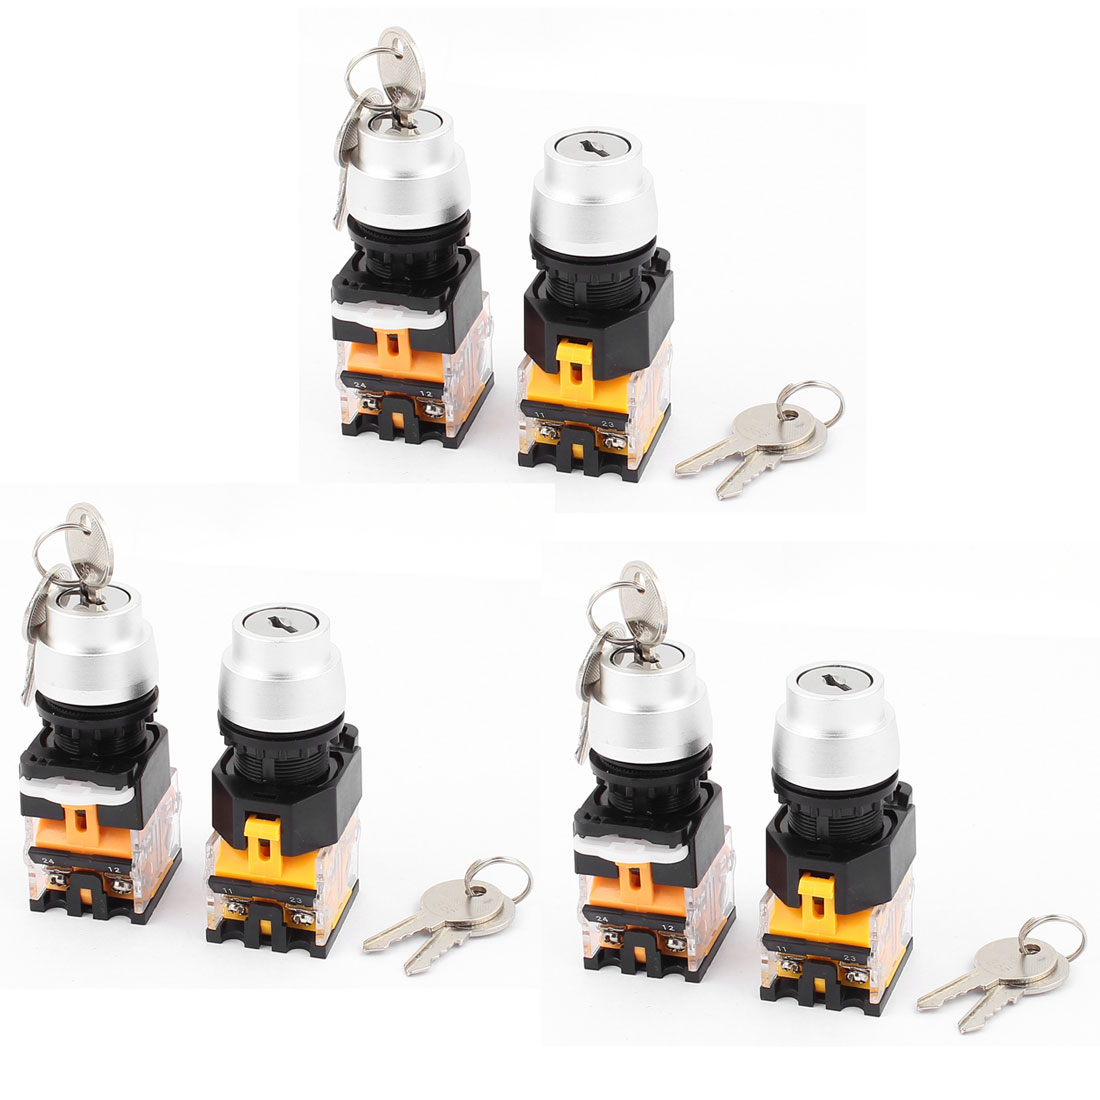 6PCS AC 660V 10A NC NO 2 Position Selector Rotary Switch w Keys